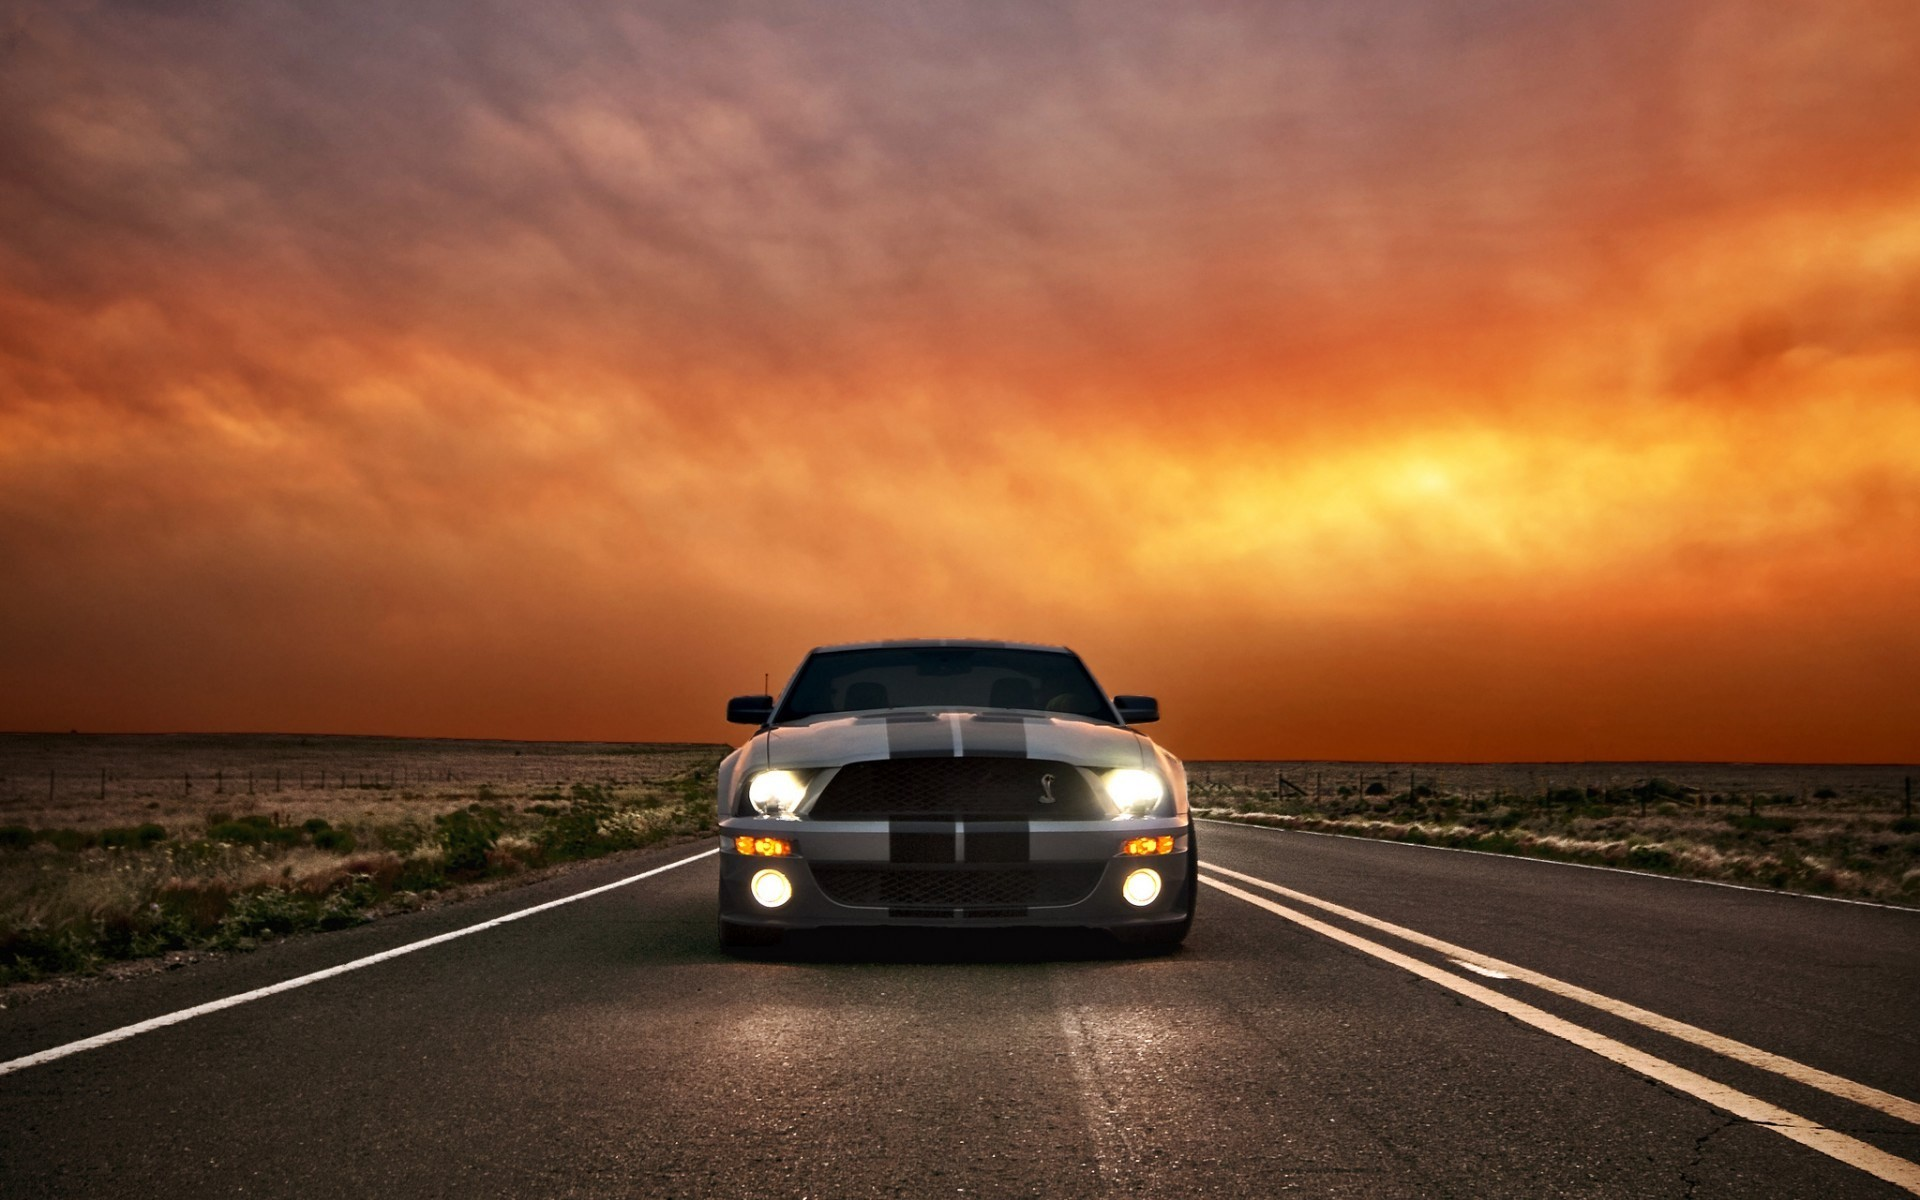 ford mustang shelby cobra gt 500 wallpaper for mac computers, Ed Peacock  2017-03